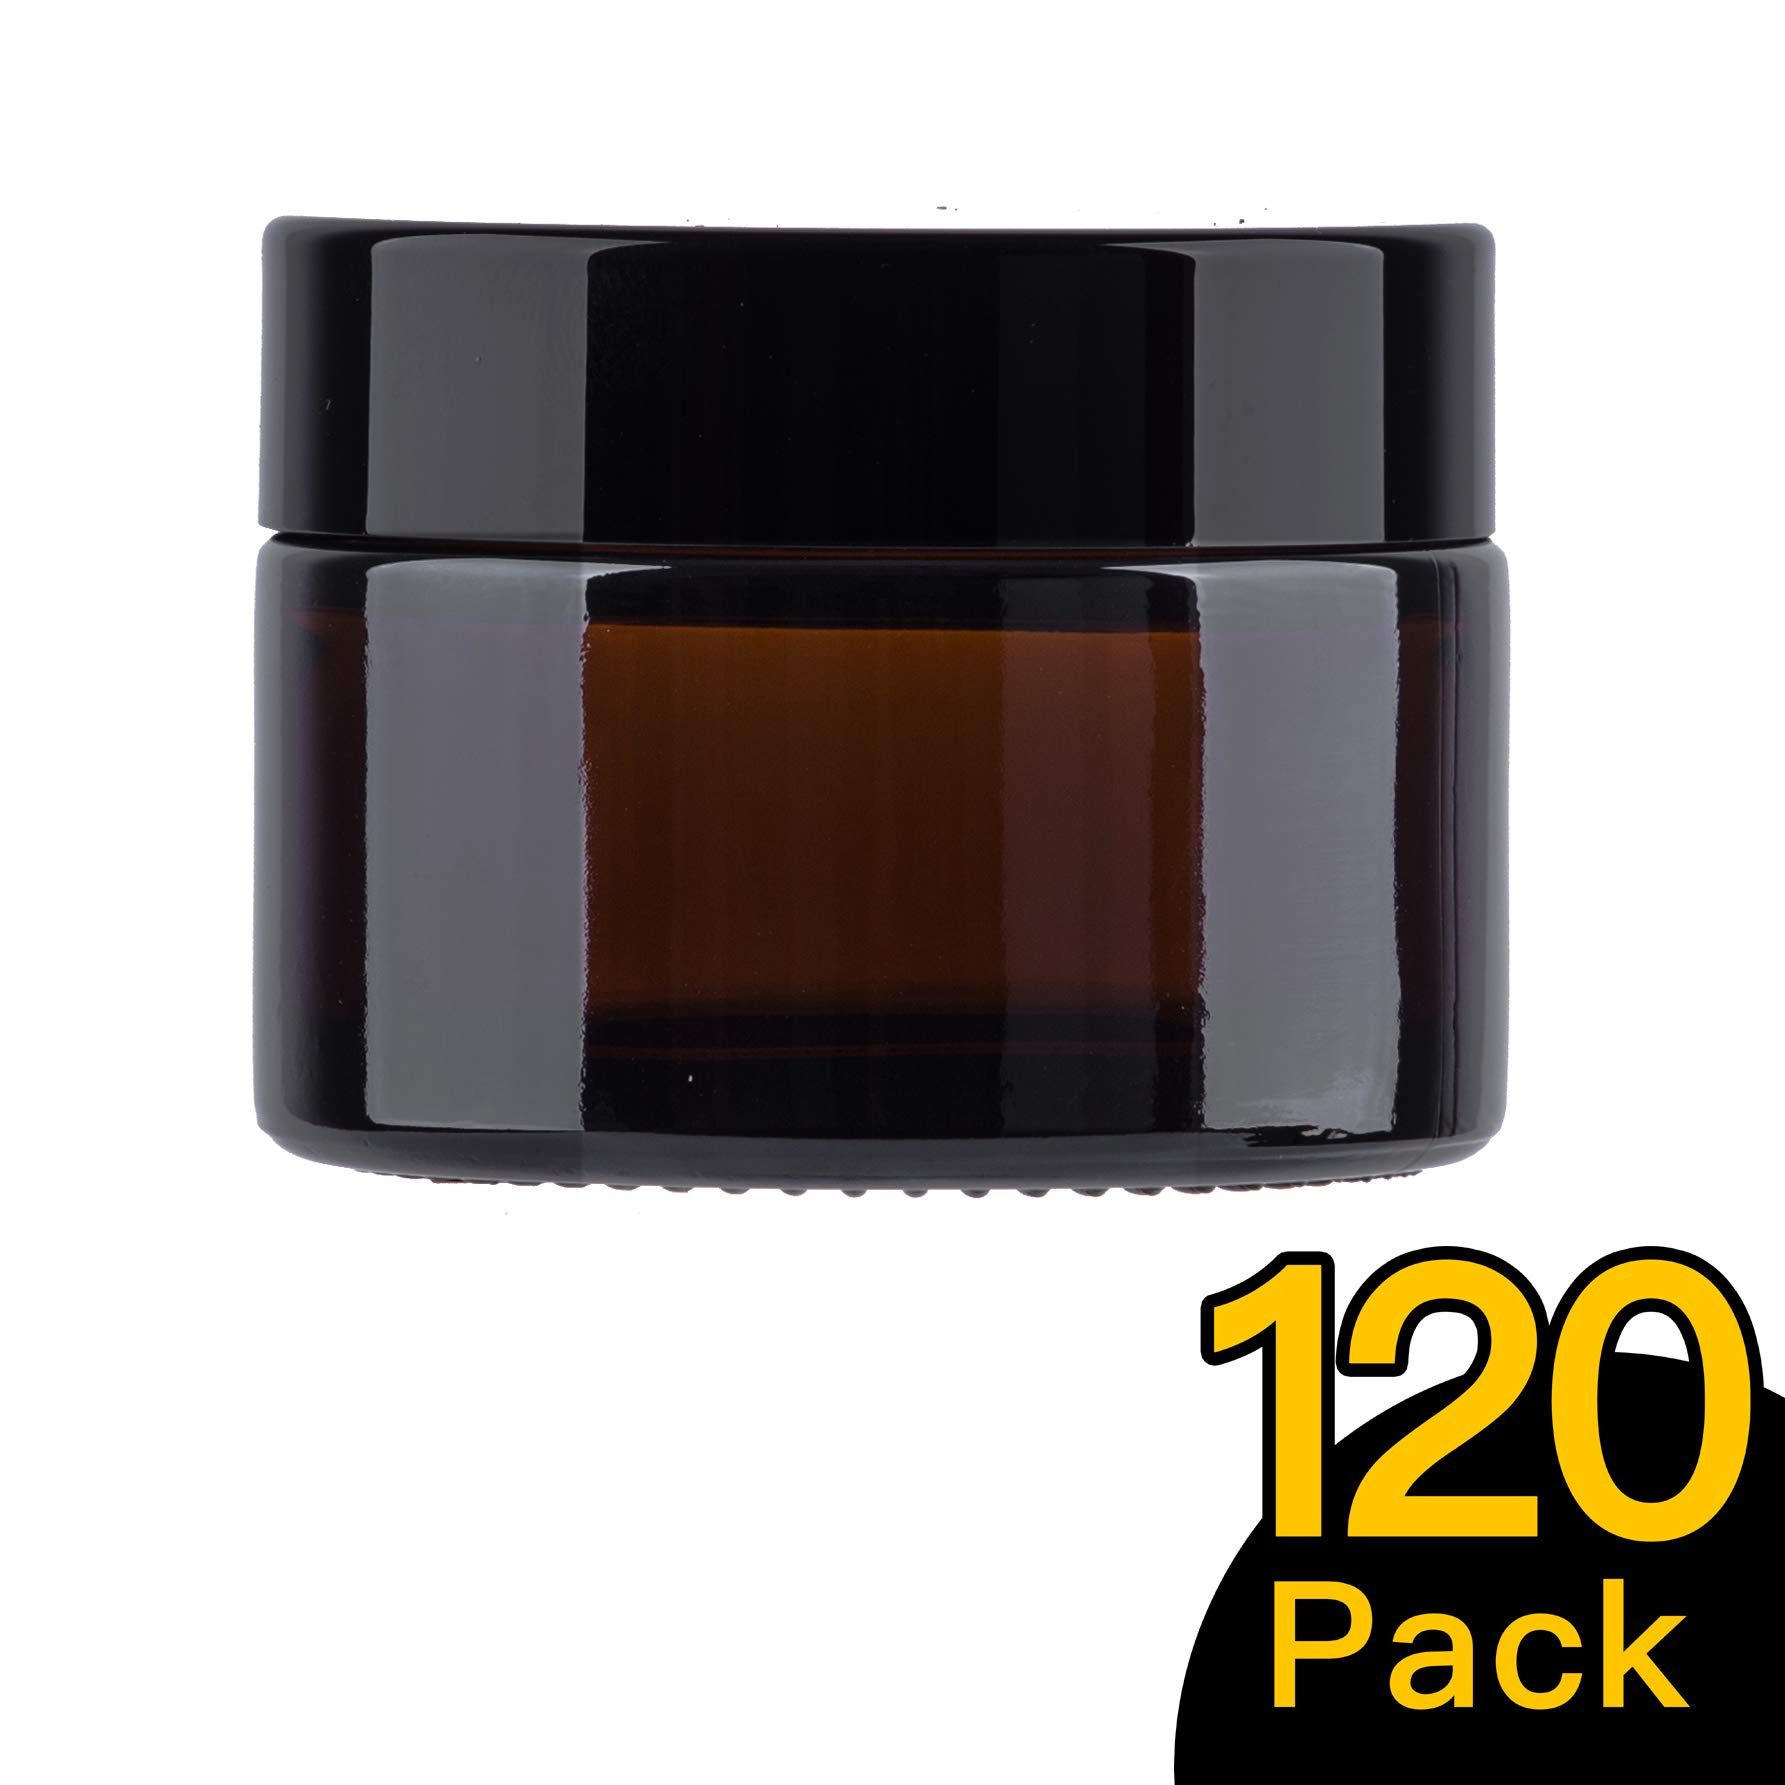 30ml 1 oz 120 Pack Snow Diamond Empty Amber Round Glass Jars, with White Inner Liners and black Lids, High End Glass Containers for Salve Cream, Premium Vials (30ml/1 oz, 120 Pack)